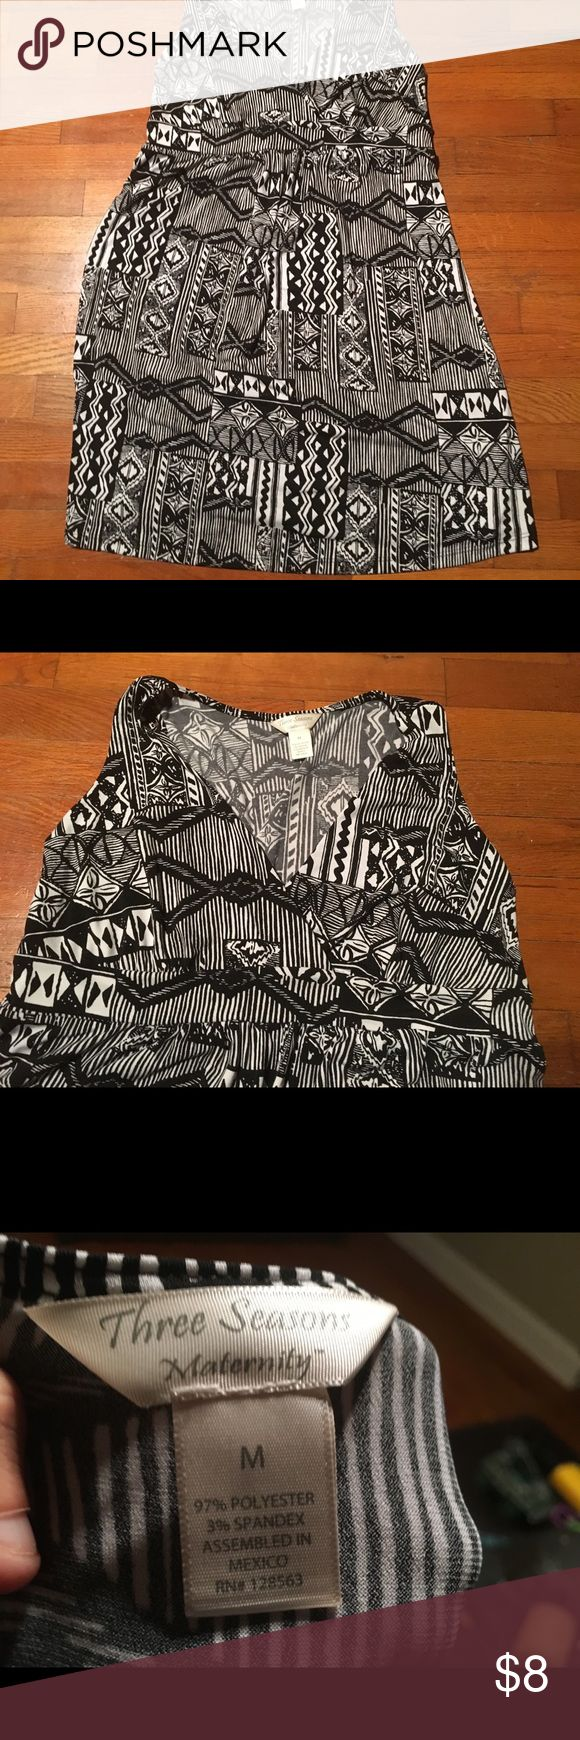 Three Seasons Maternity Dress Size M Beautiful black and white v neck maternity dress with soft fabric. Excellent condition. Three Seasons Maternity Dresses